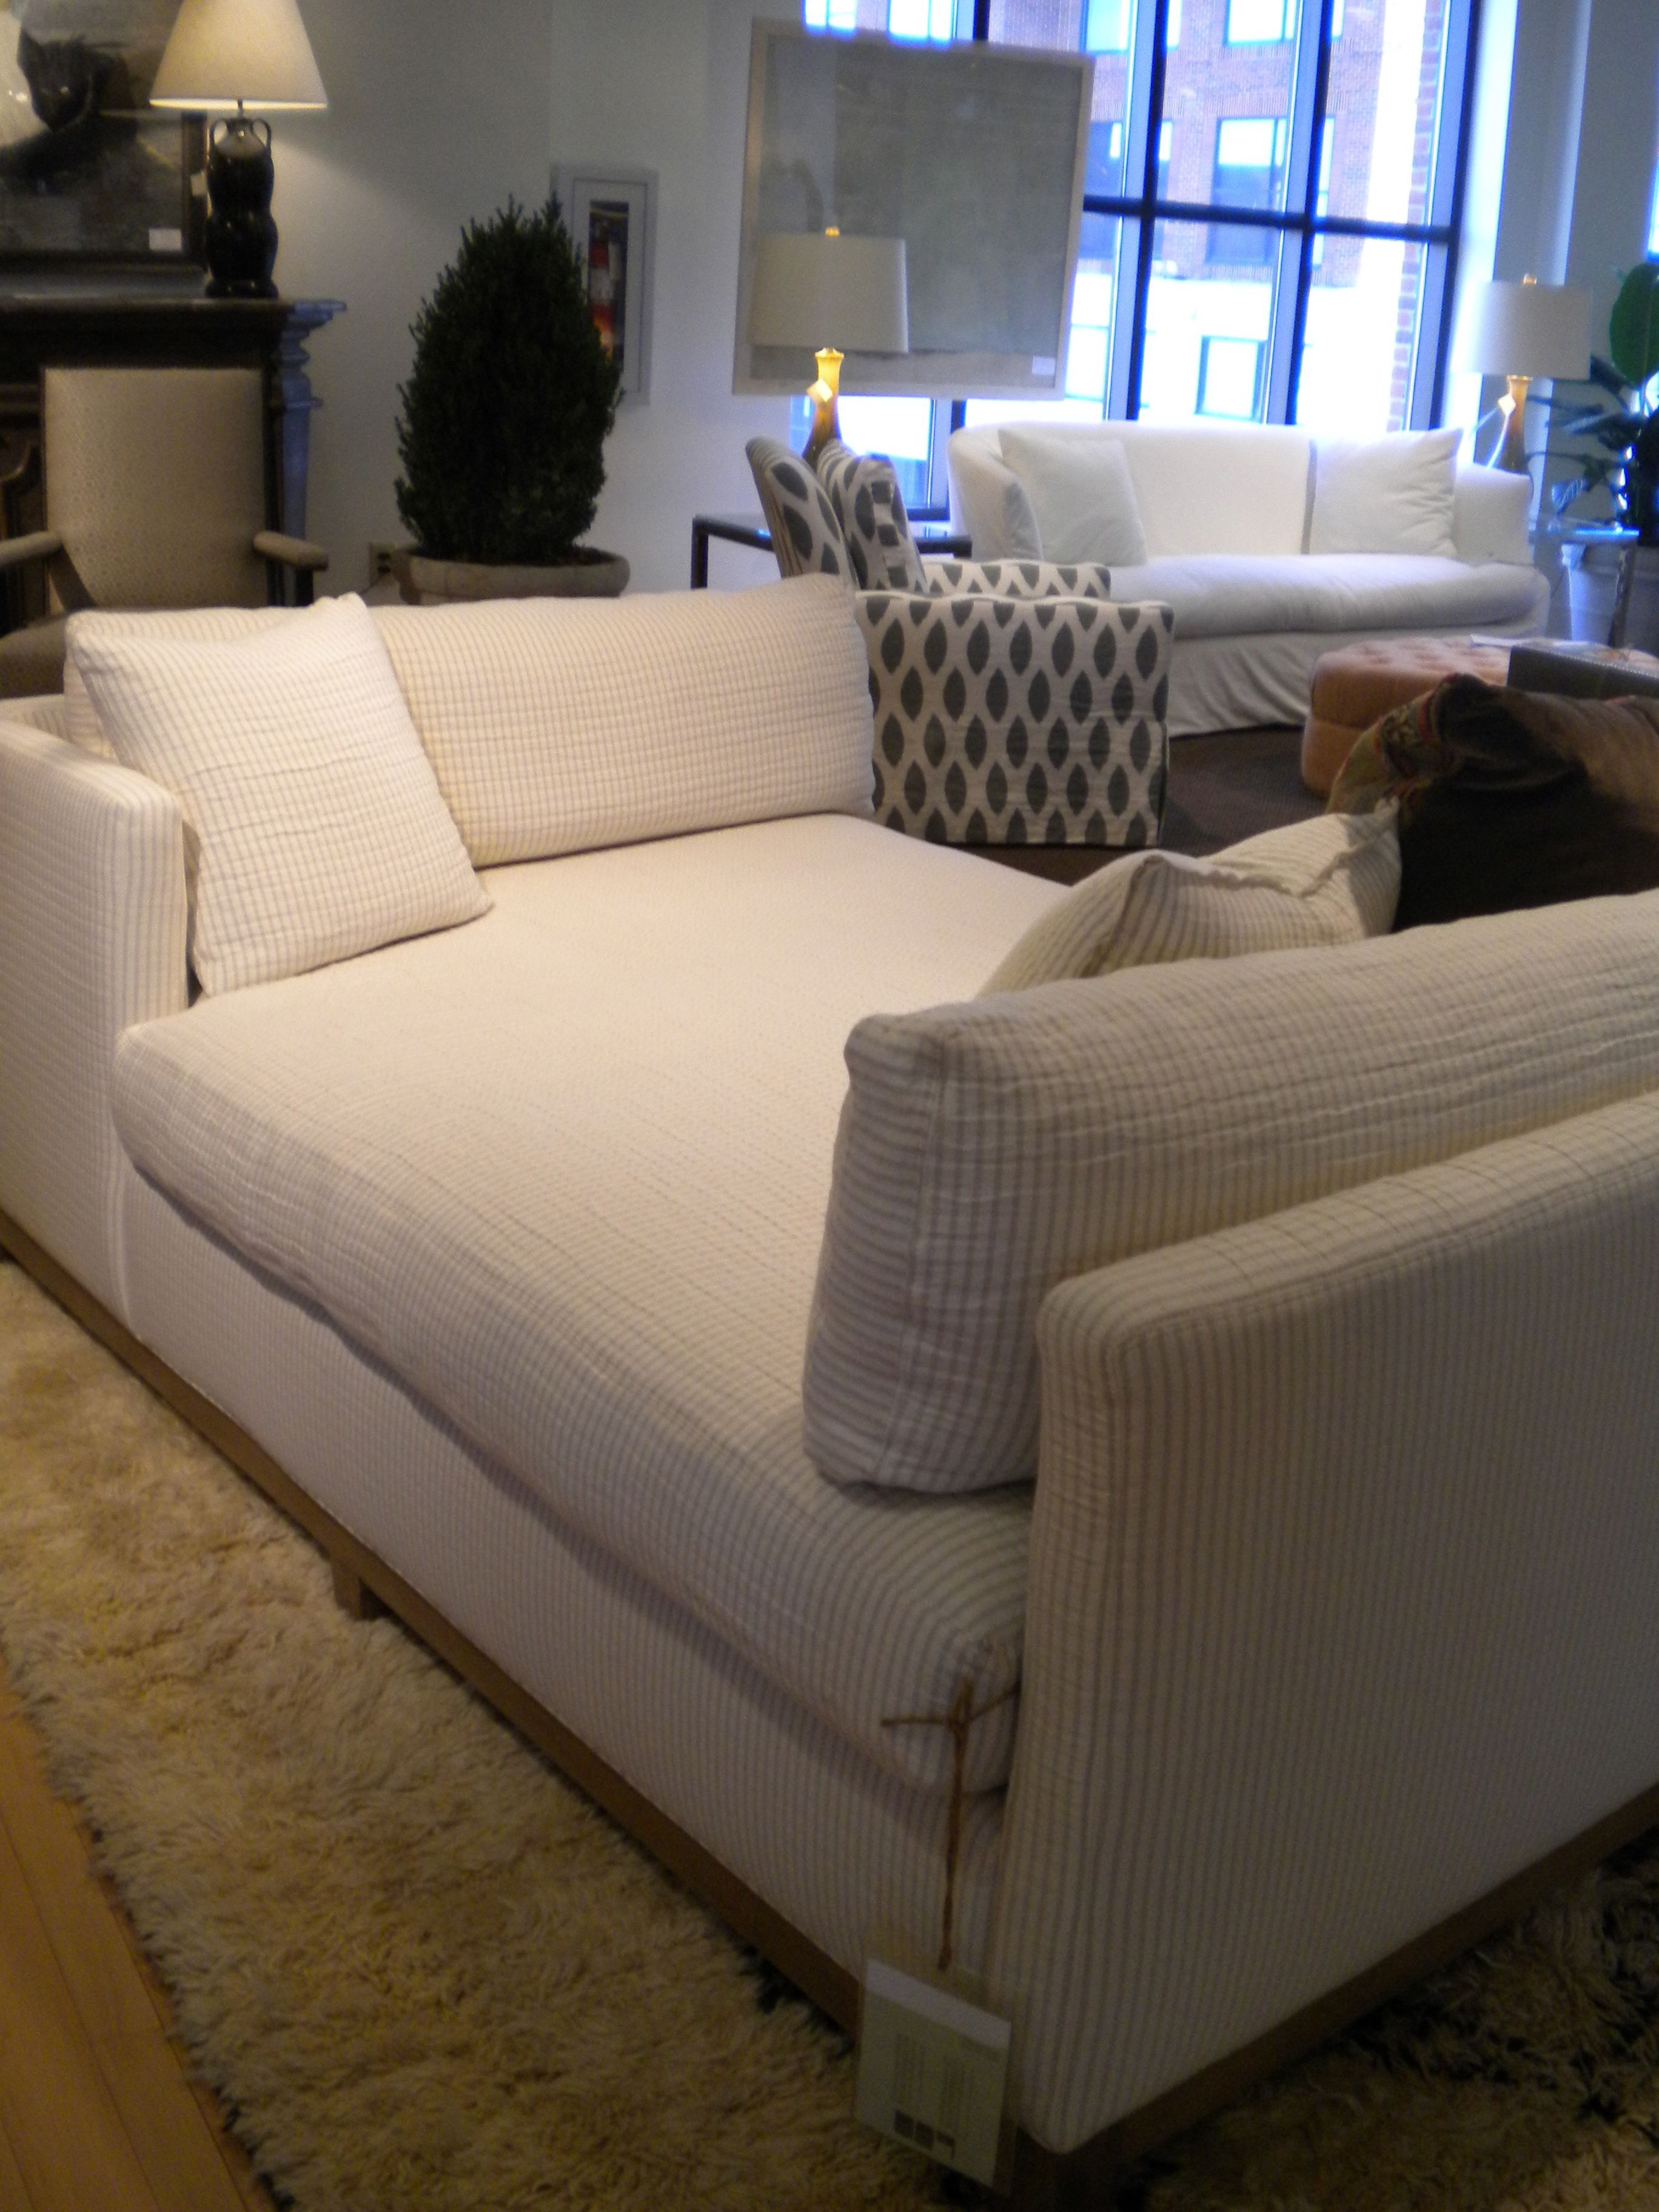 LOve it x | Chaise lounge living room, Double chaise ...